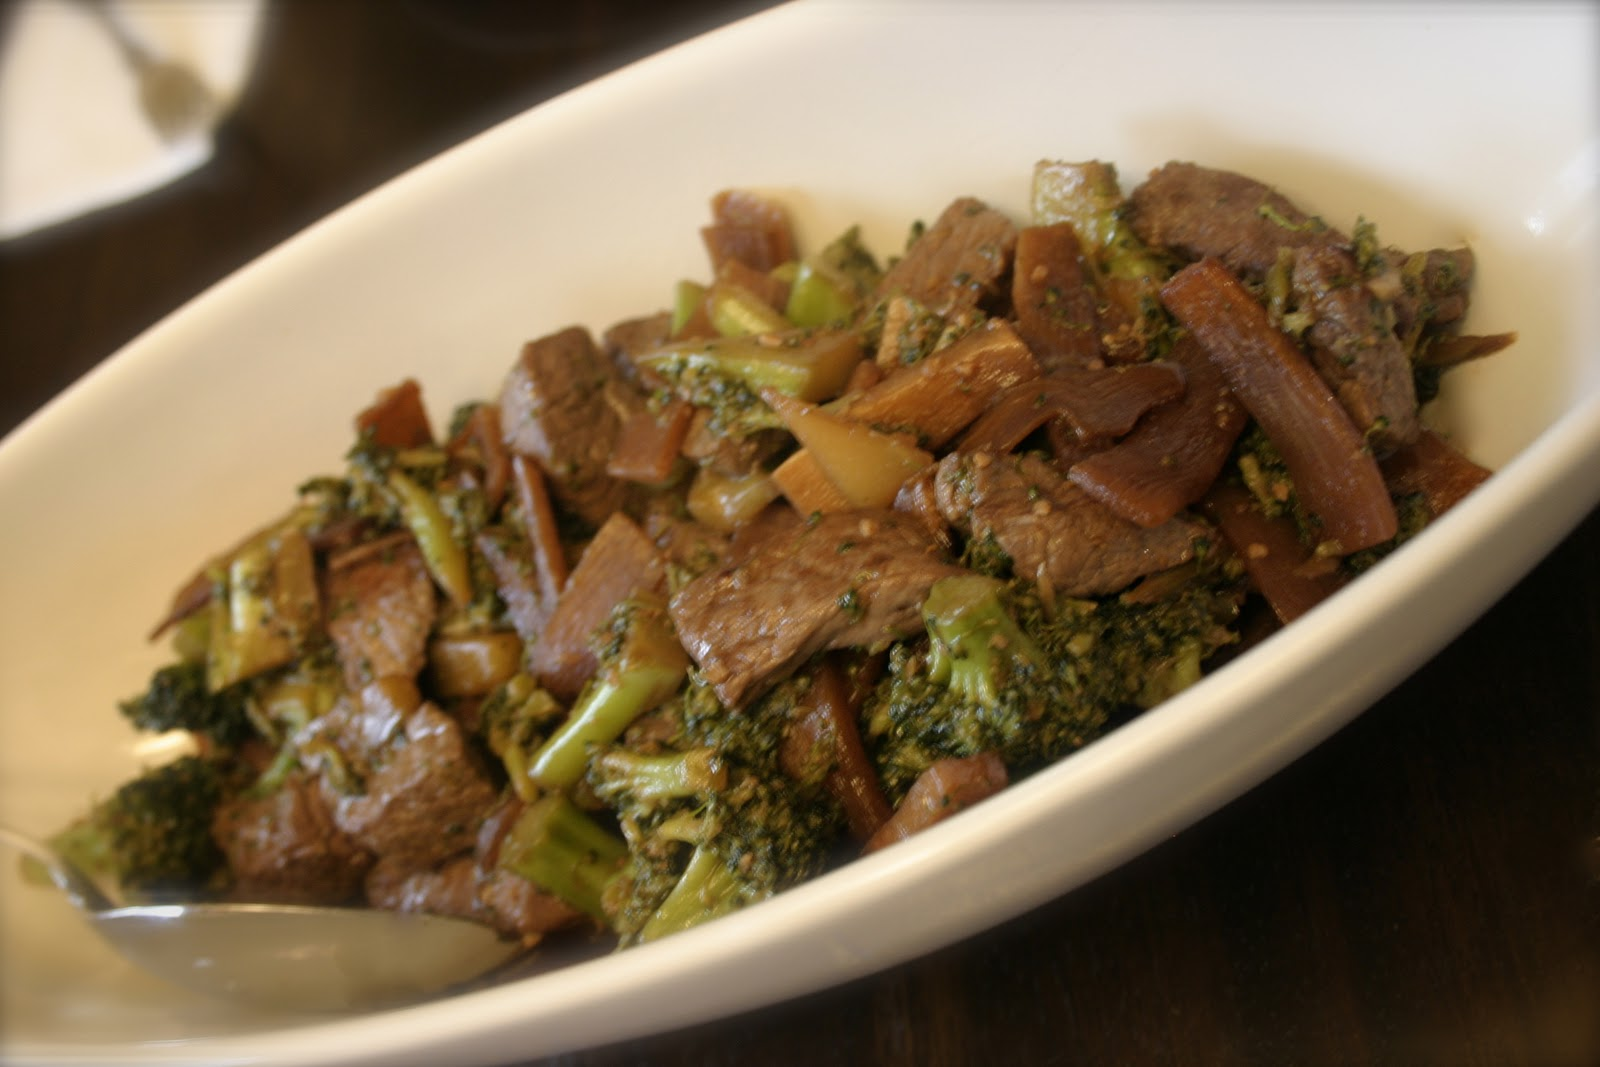 Deelicious Sweets: Beef and Broccoli with Garlic Sauce